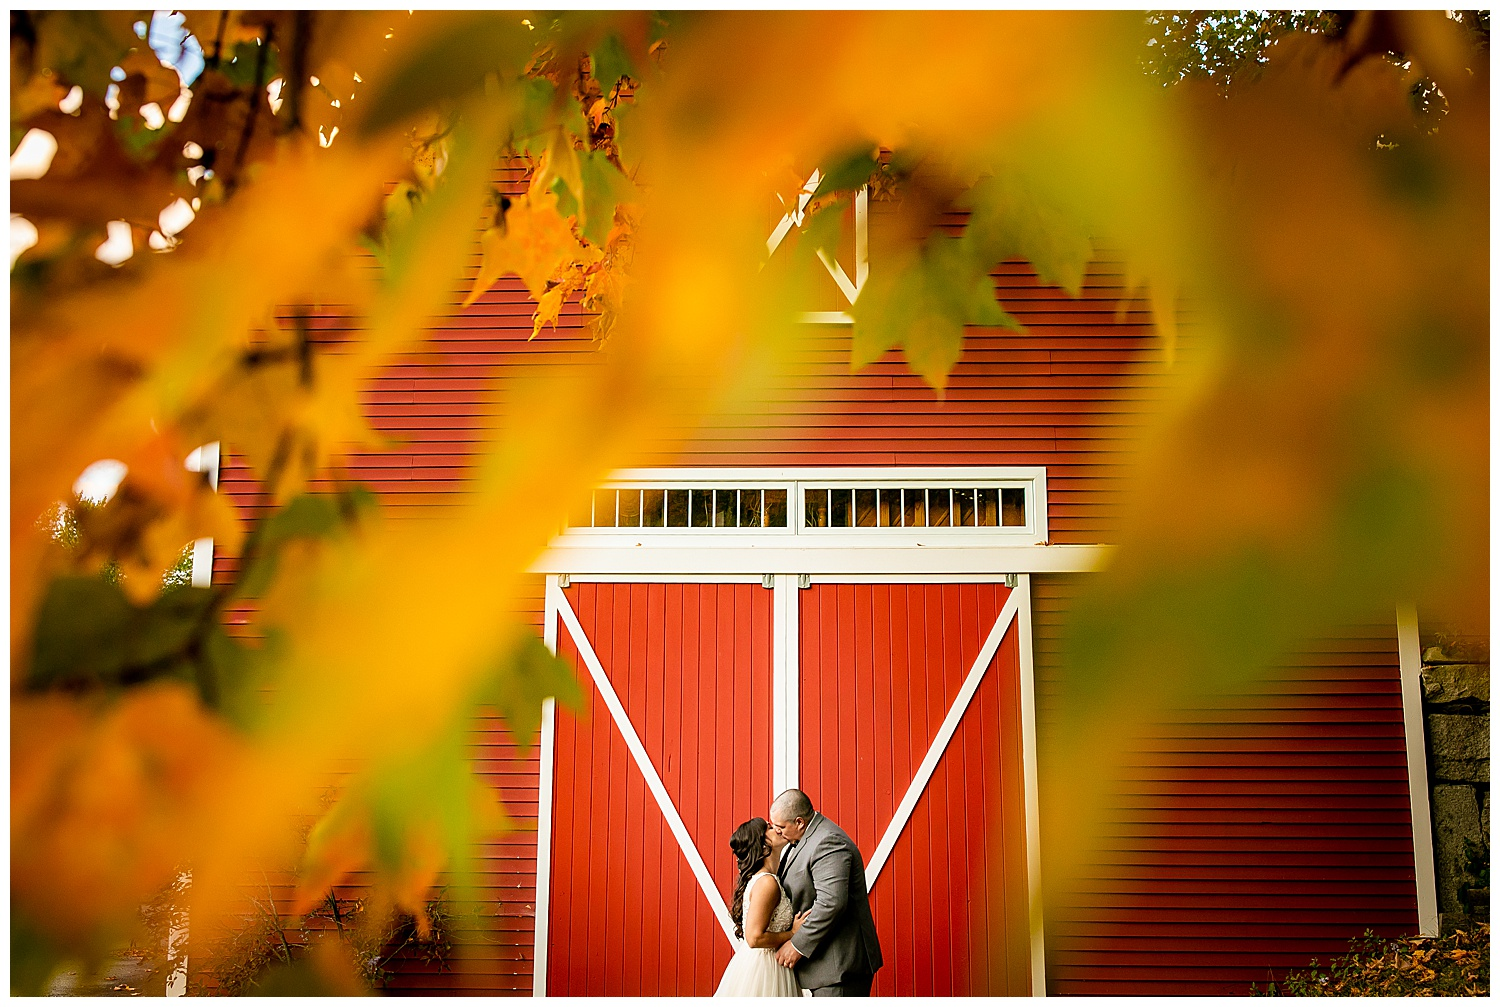 Backyard Wedding in New Hampshire. Fall wedding in NH. Barn wedding in NH.